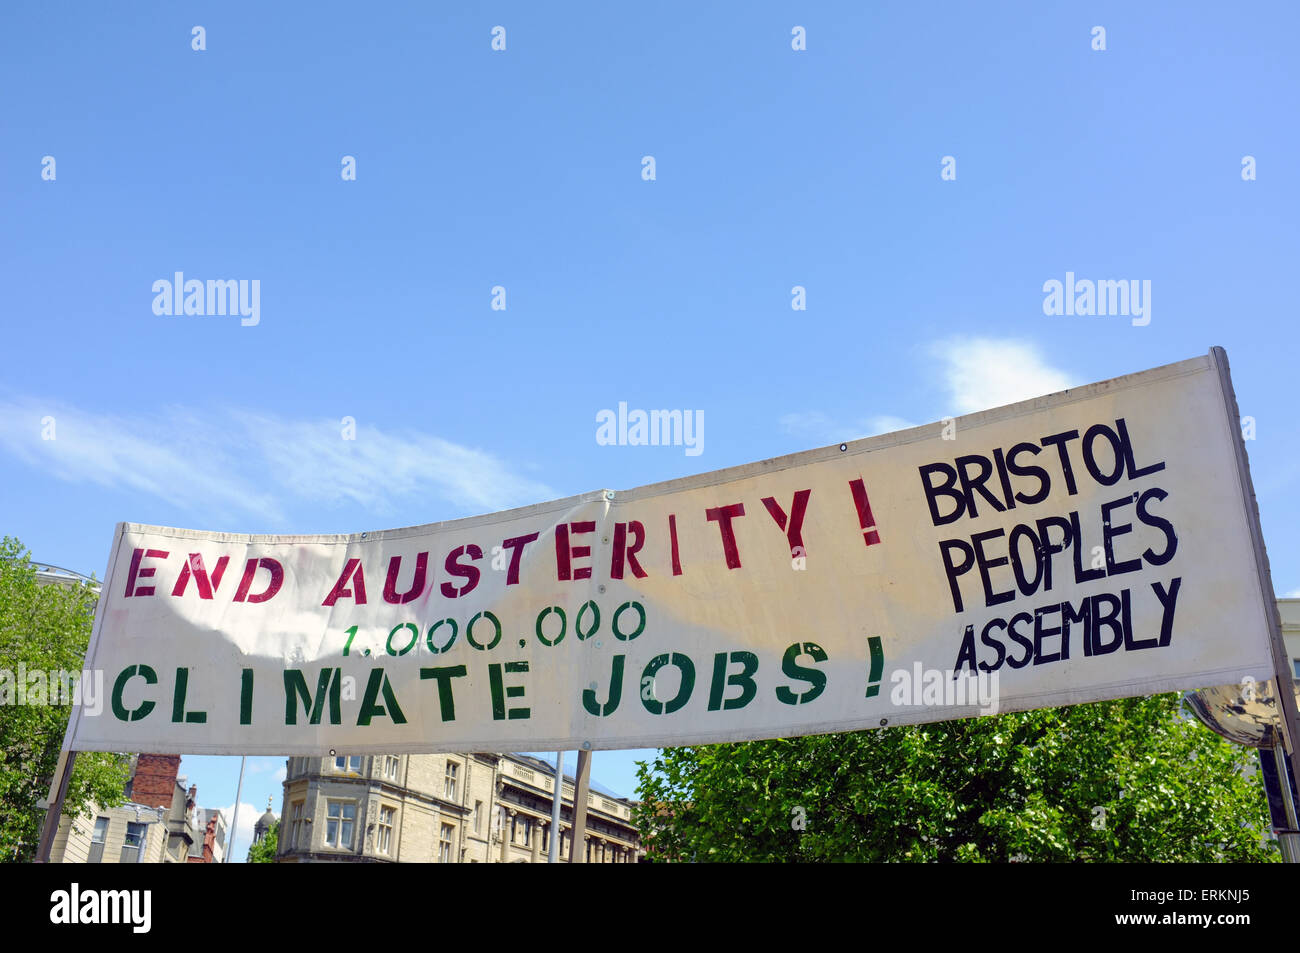 An end austerity banner held up at an anti-austerity protest held in Bristol. - Stock Image